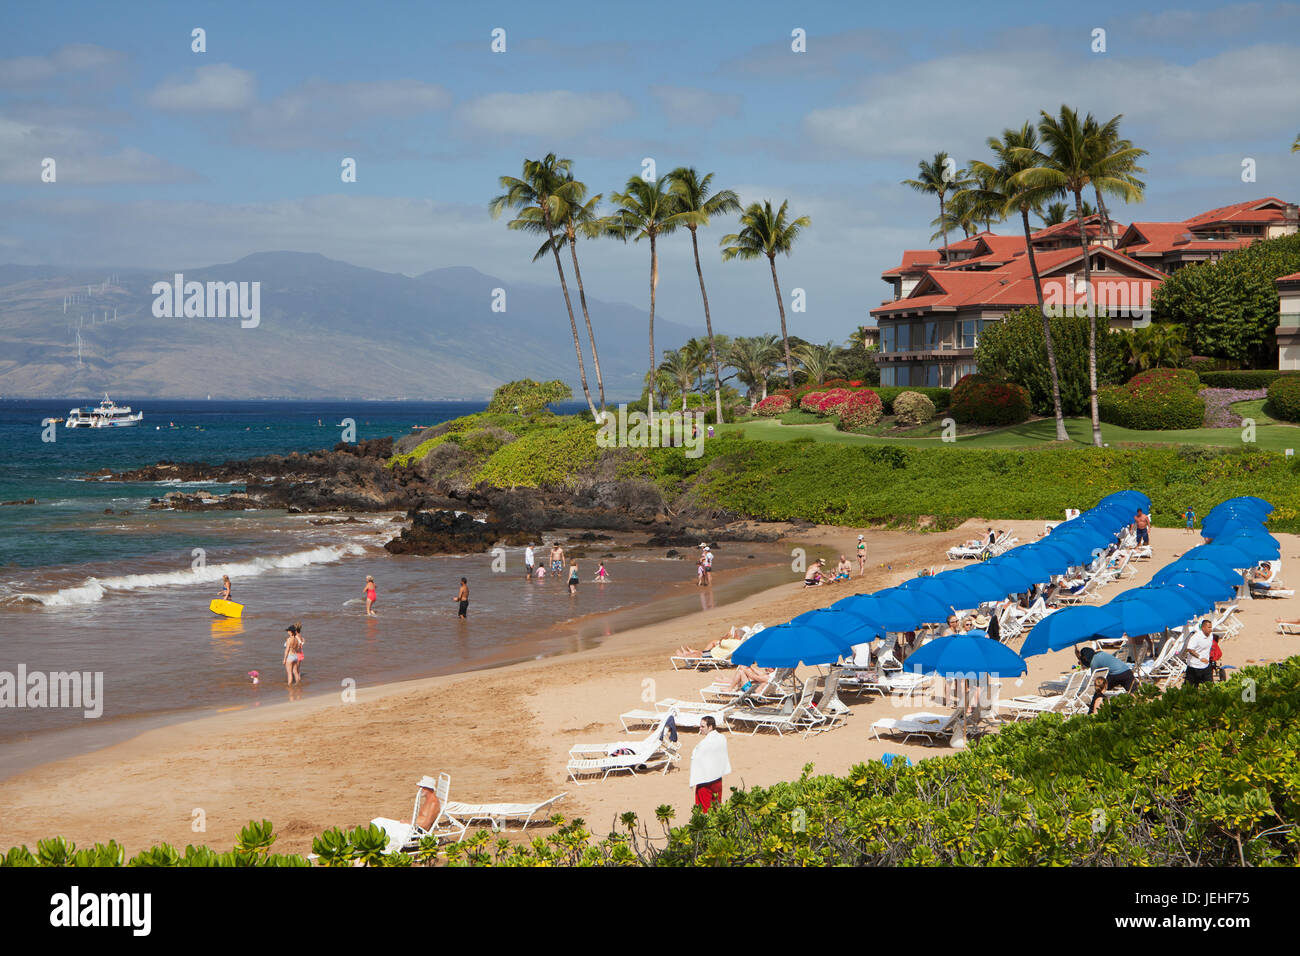 Beach umbrellas on Polo Beach and a snorkel boat off the shore; Wailea, Maui, Hawaii, United States of America - Stock Image